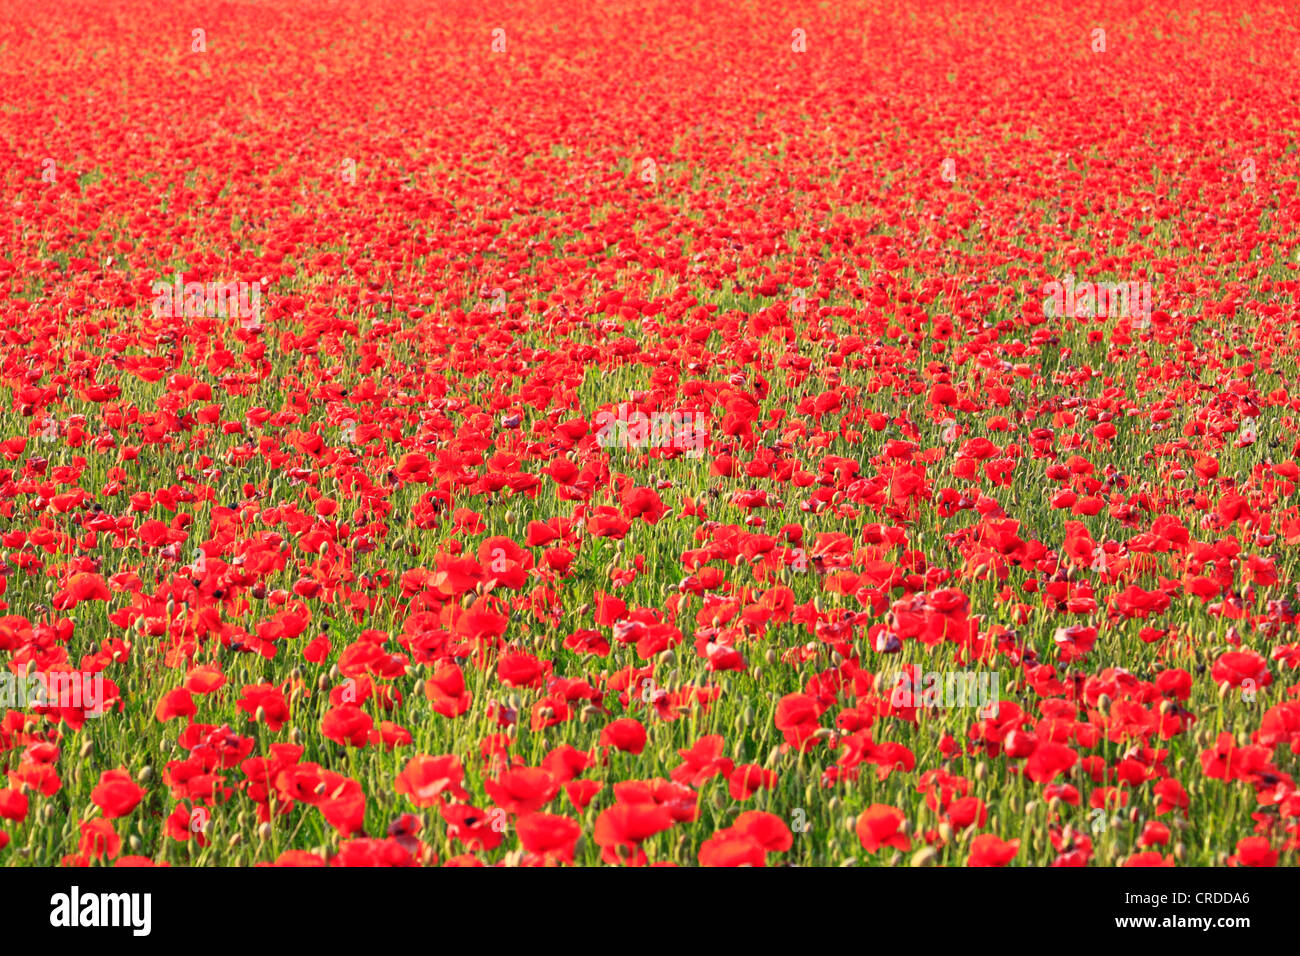 Poppy field at Blackstone, a Worcestershire Wildlife Trust managed area, Bewdley, Worcestershire, England, Europe - Stock Image